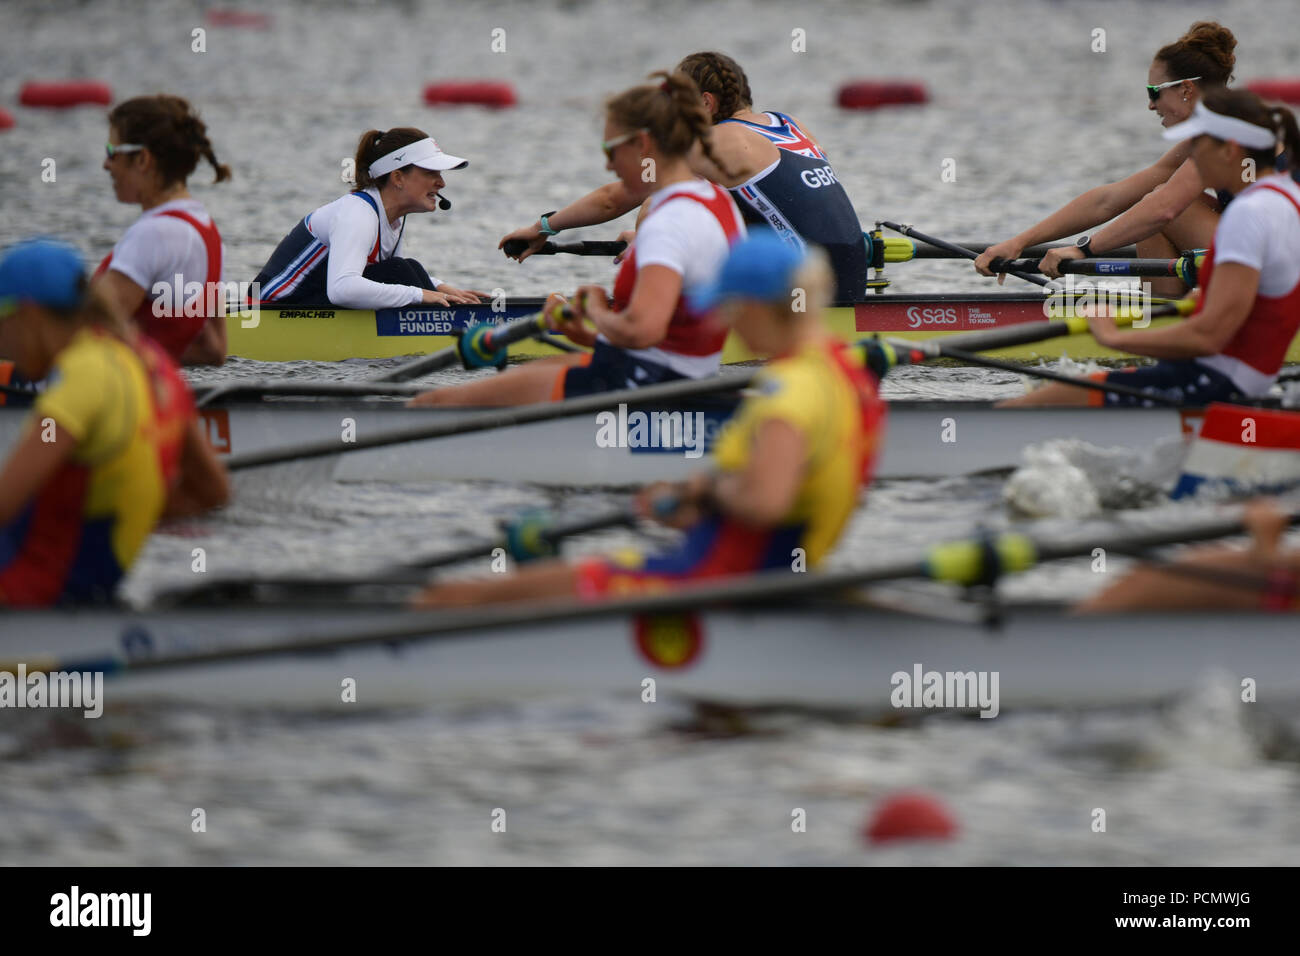 Glasgow    August  03 2018; European Championship Rowing, 2nd day of competition at the Strathclyde Country Park. PIctured Women's Eight GBR, Matilda Horn.   credit steven scott taylor / alamy live news Stock Photo